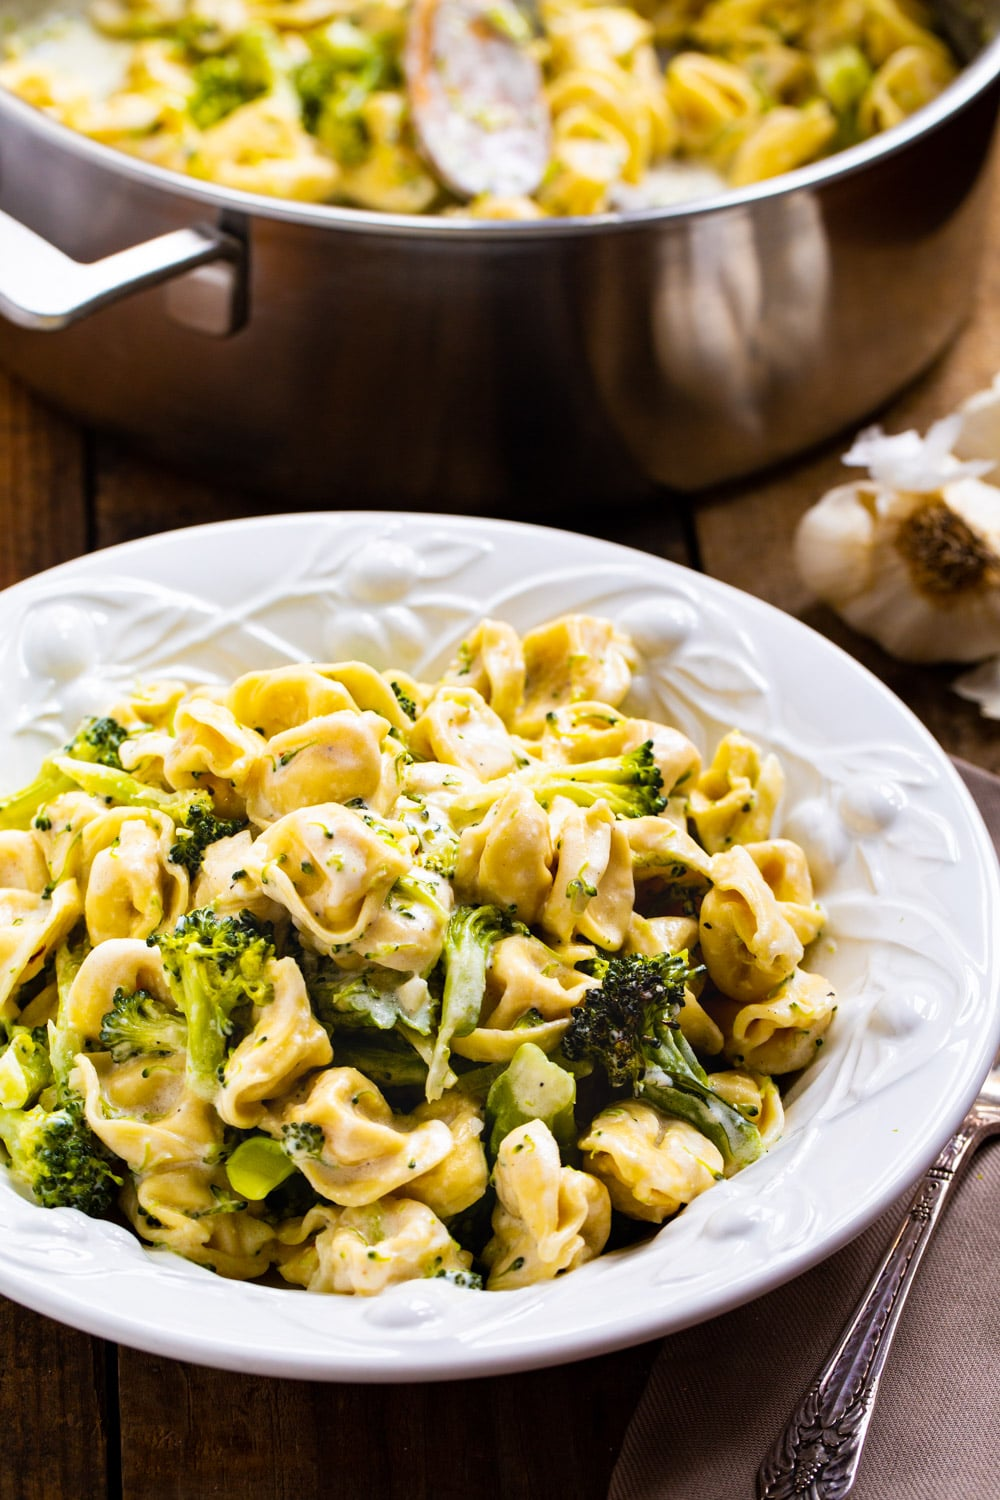 Broccoli Alfredo Tortellini dished up in a pasta bowl.